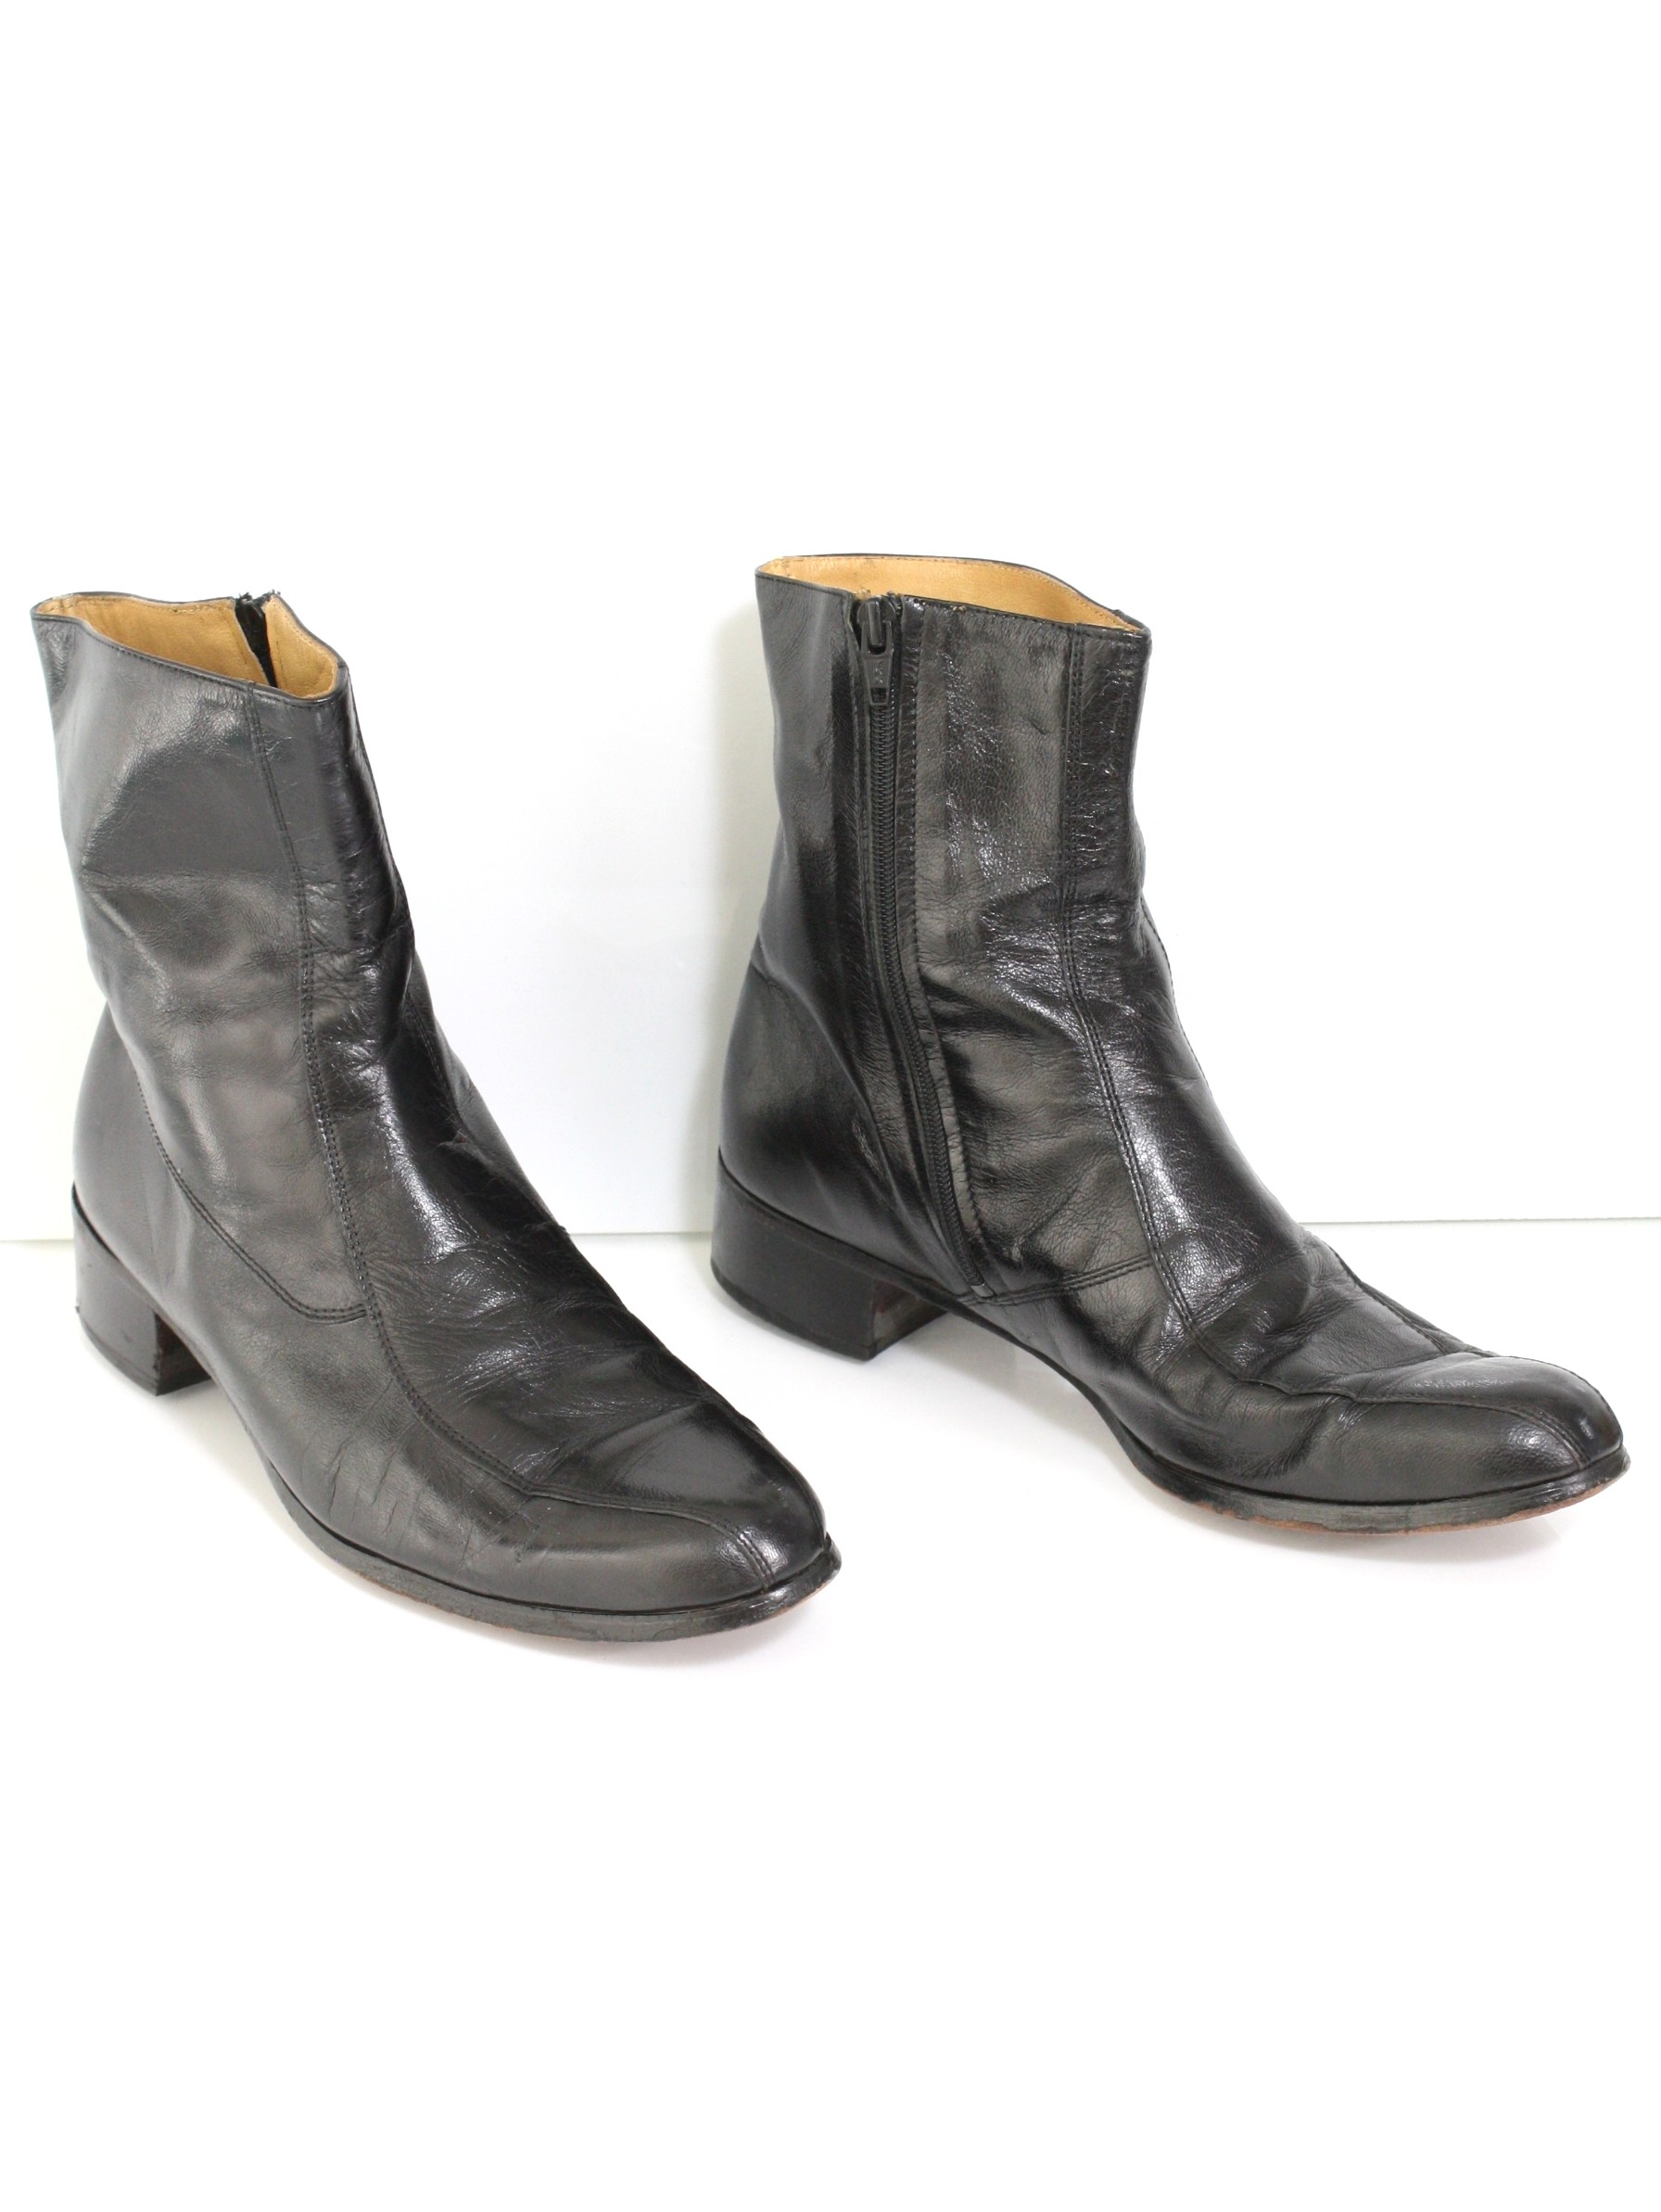 ecca44ddf57 Vintage Seventies Shoes: 70s -No Label- Mens black smooth leather ...